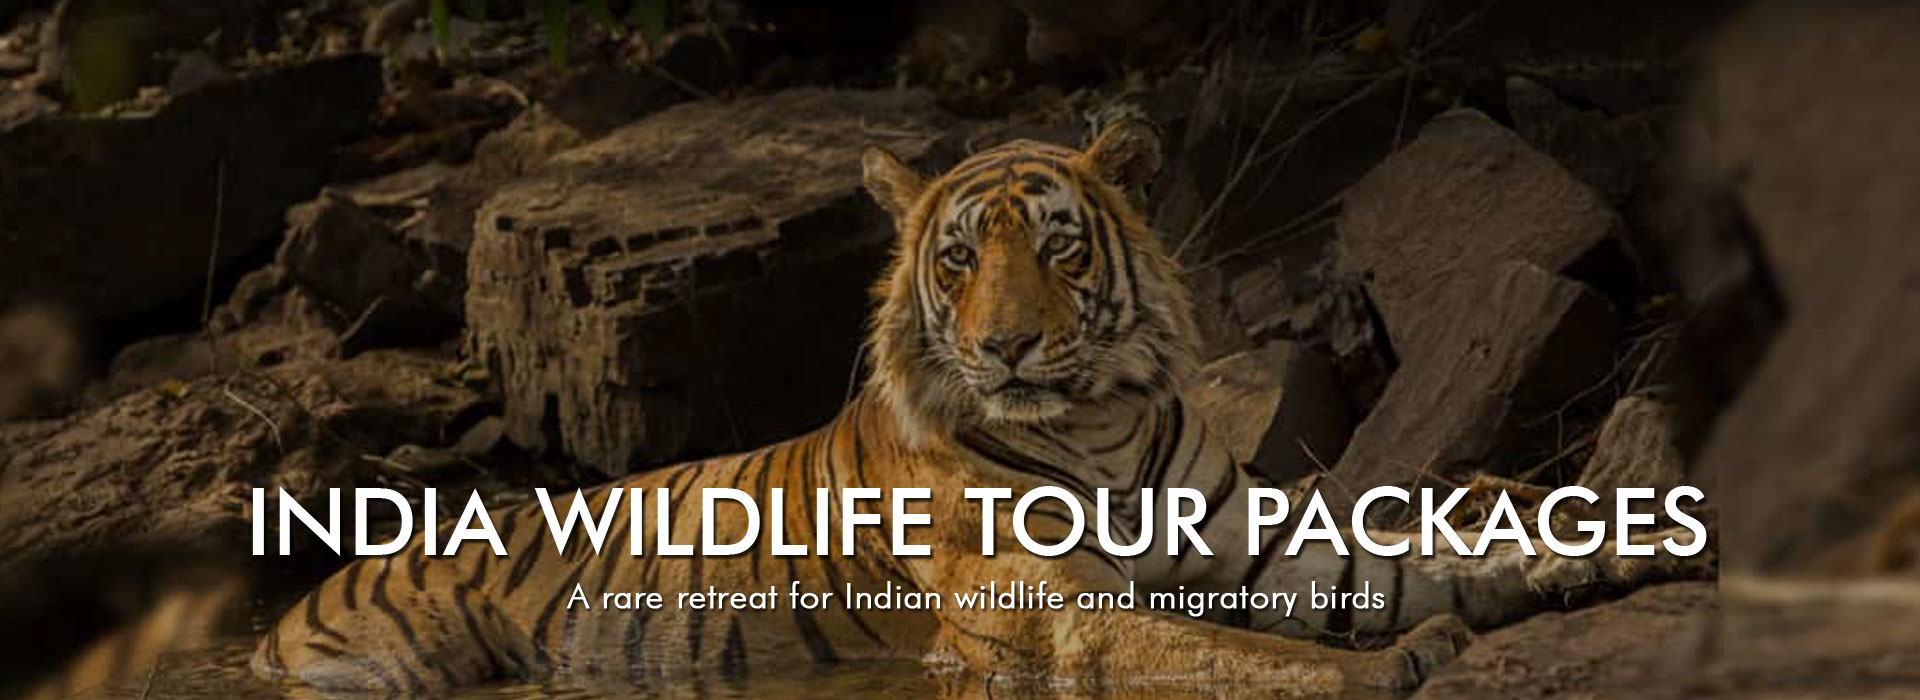 India-Wildlife-Tour-Packages-slide-1